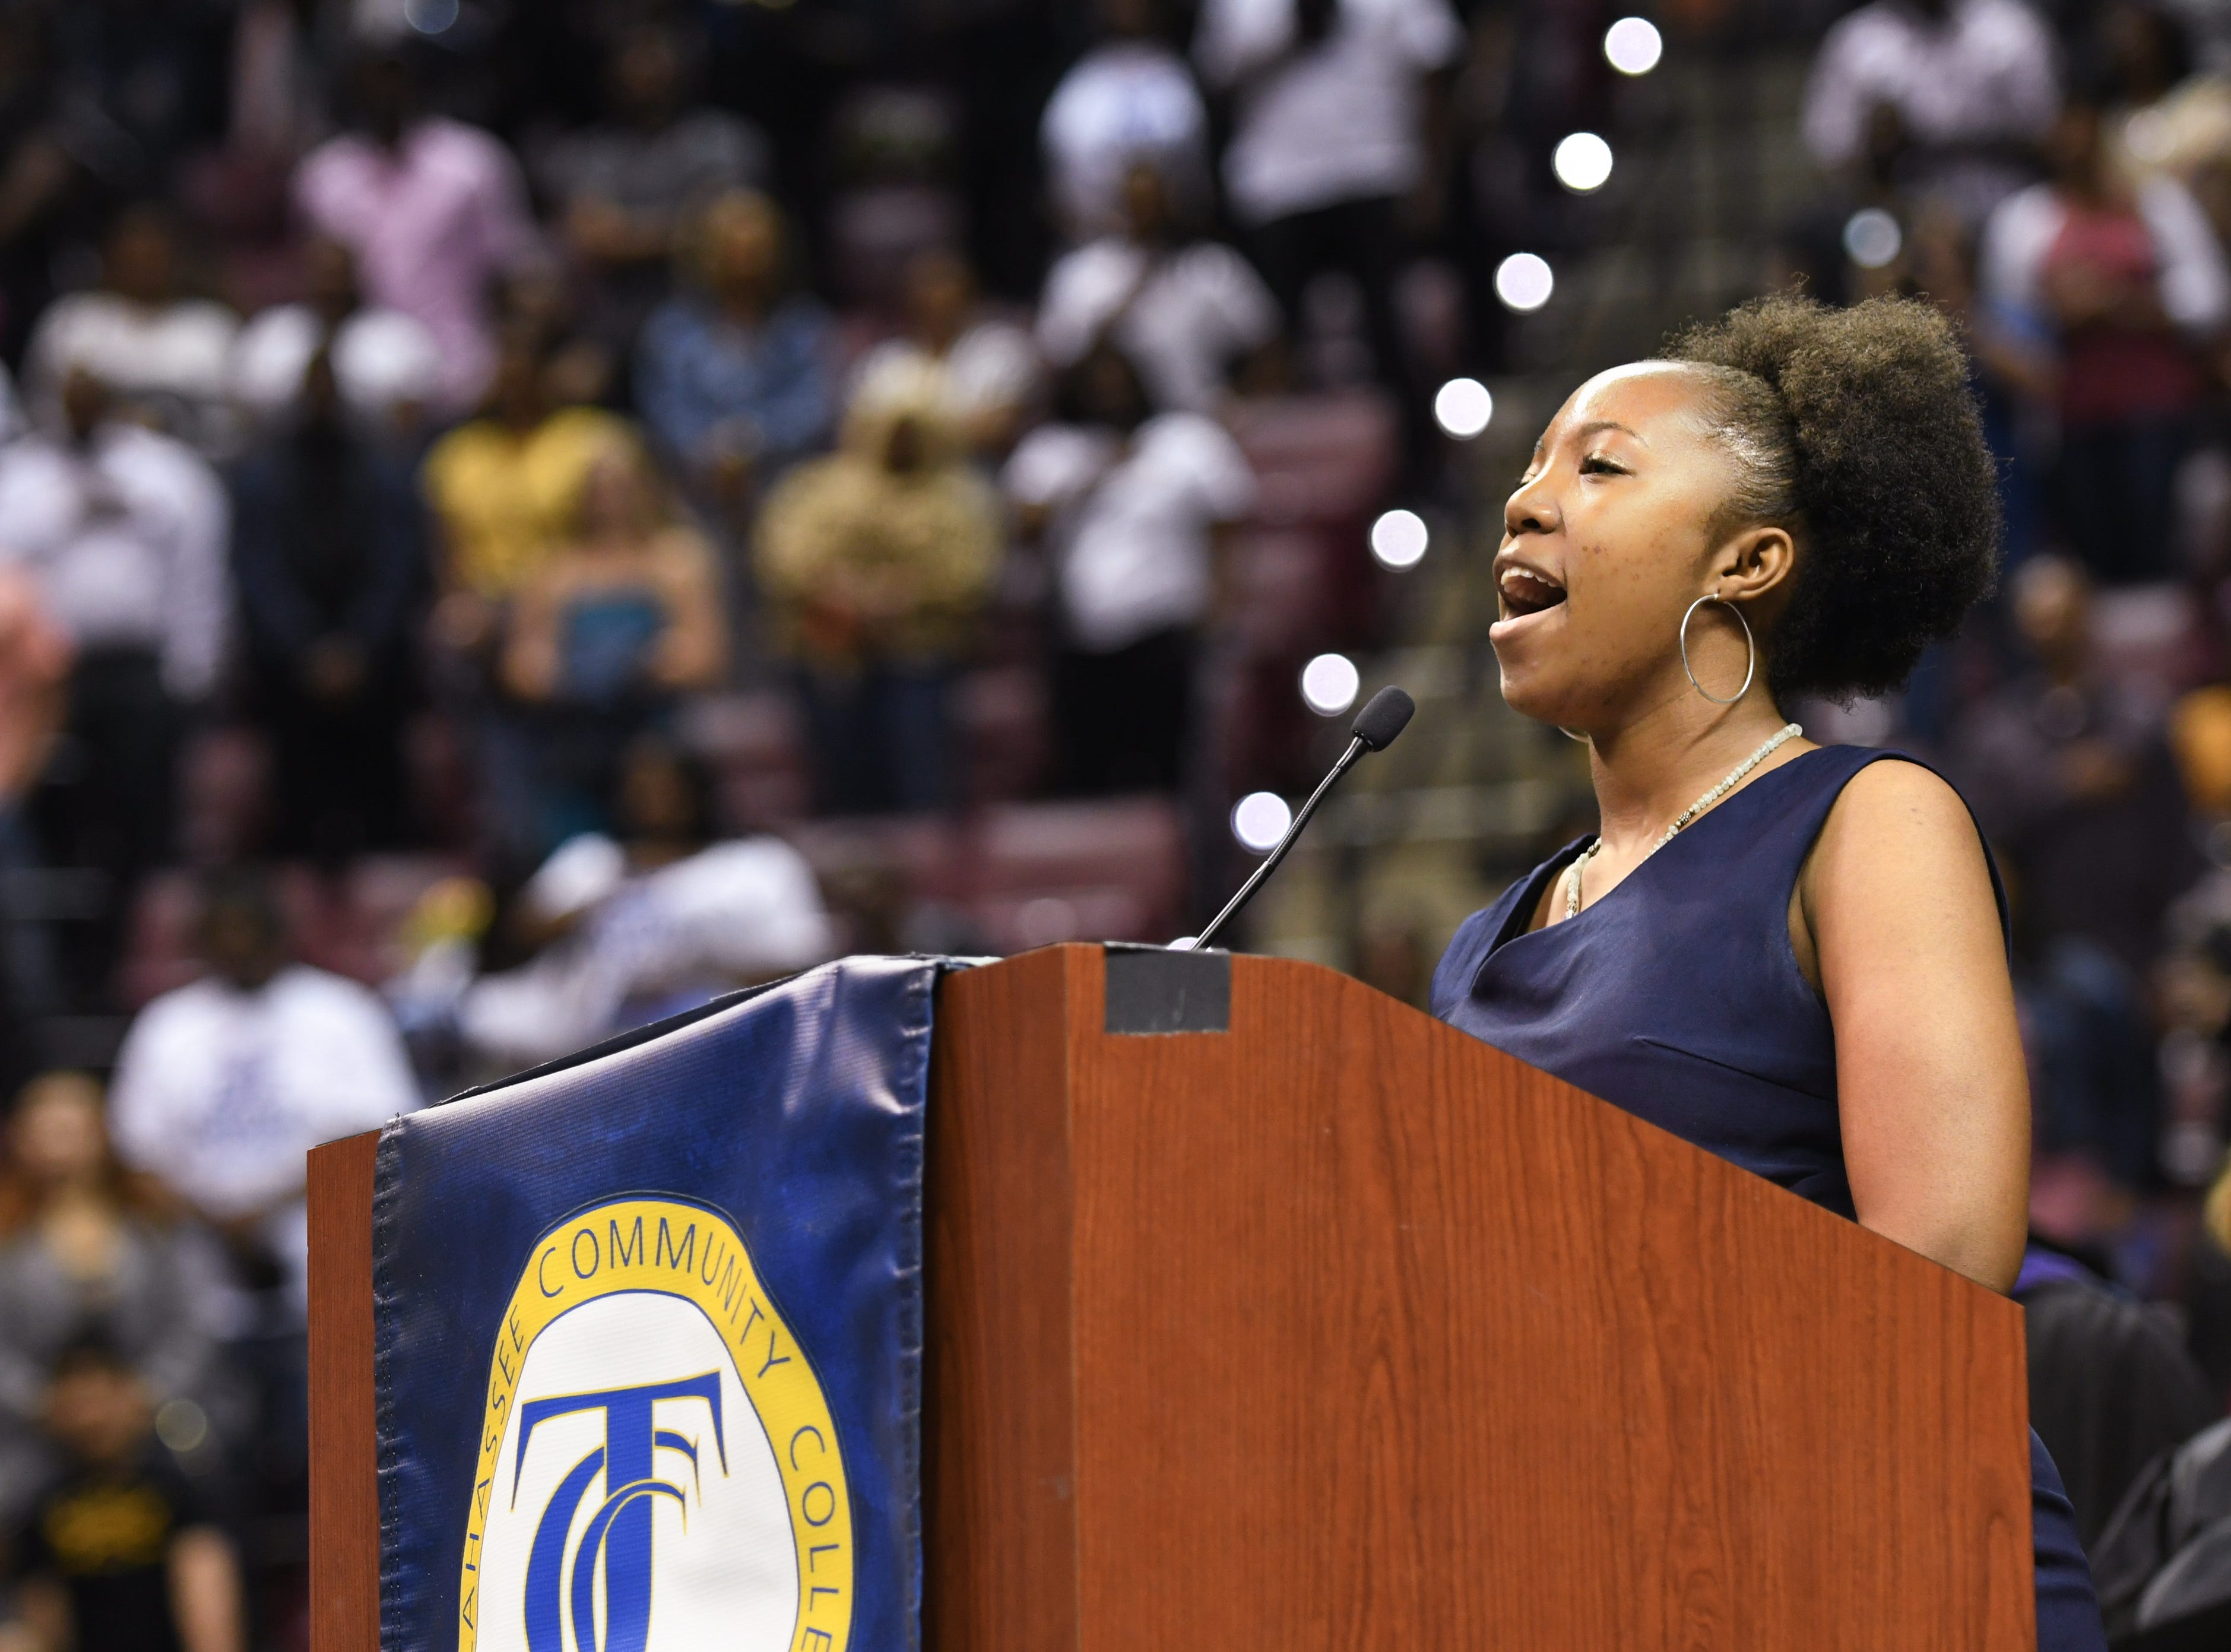 Mya Trammel sings the National Anthem before her mother, Nikki Trammel, graduates from Tallahassee Community College at Donald L. Tucker Civic Center Saturday, May 4, 2019.